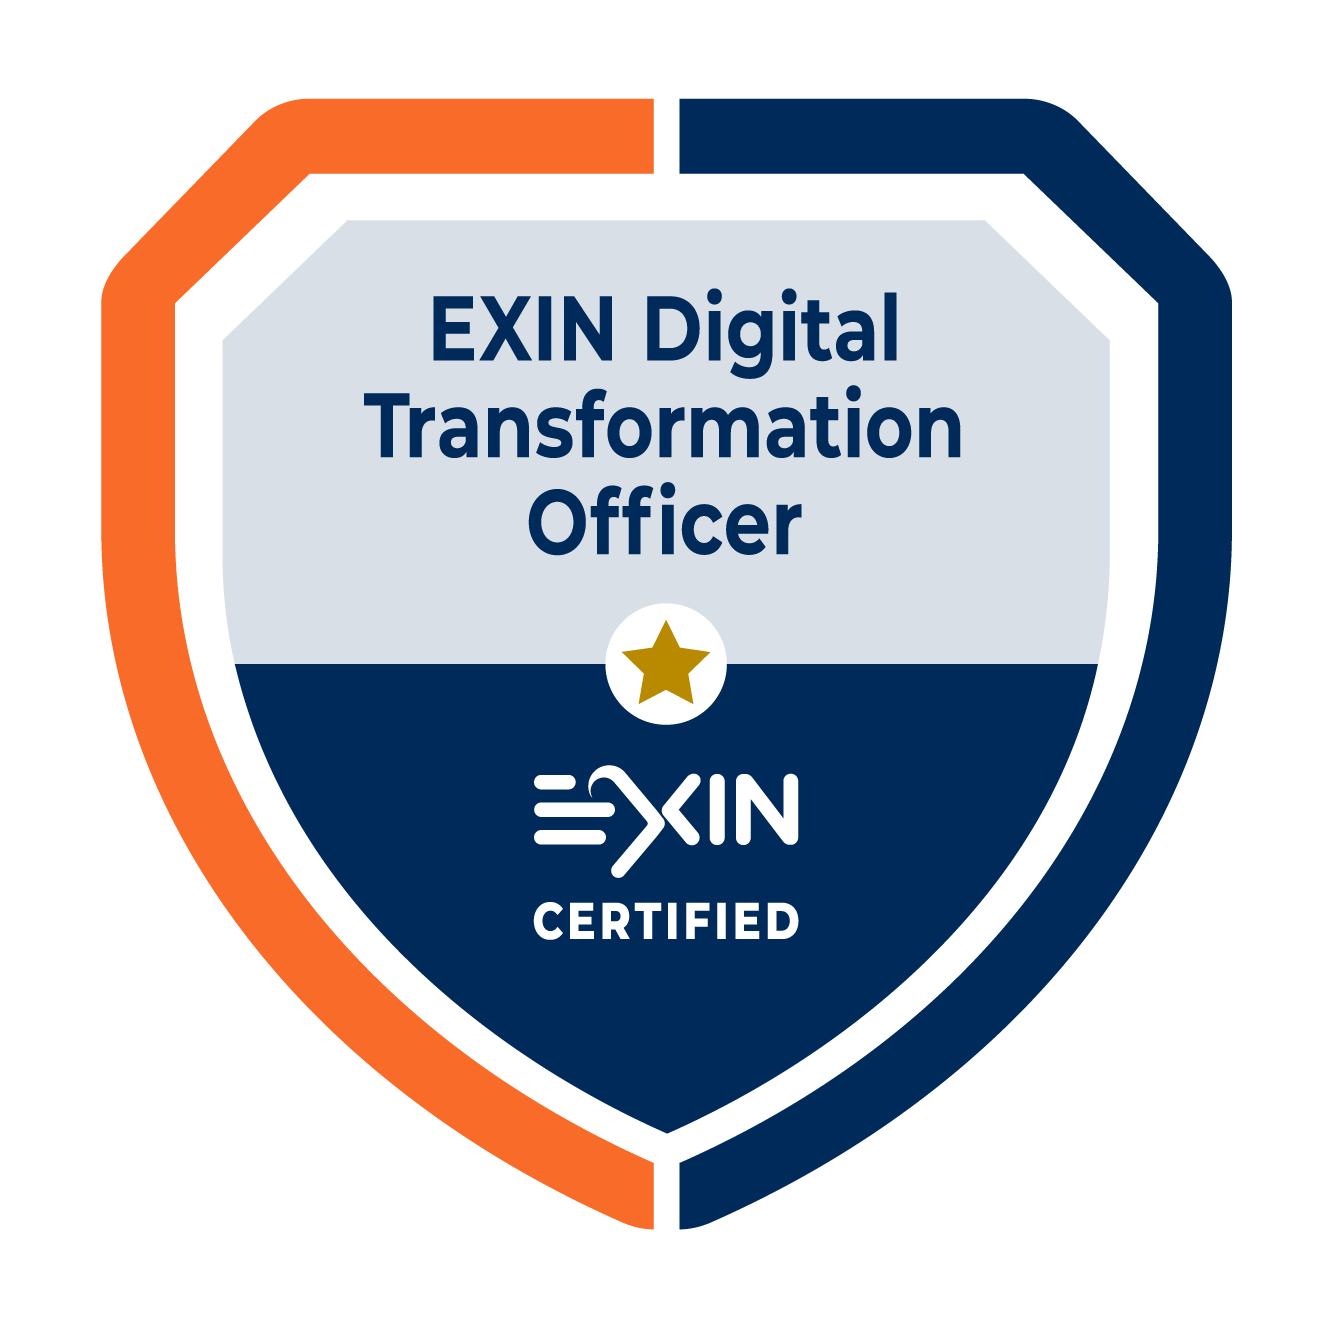 EXIN Digital Transformation Officer Digital Badge